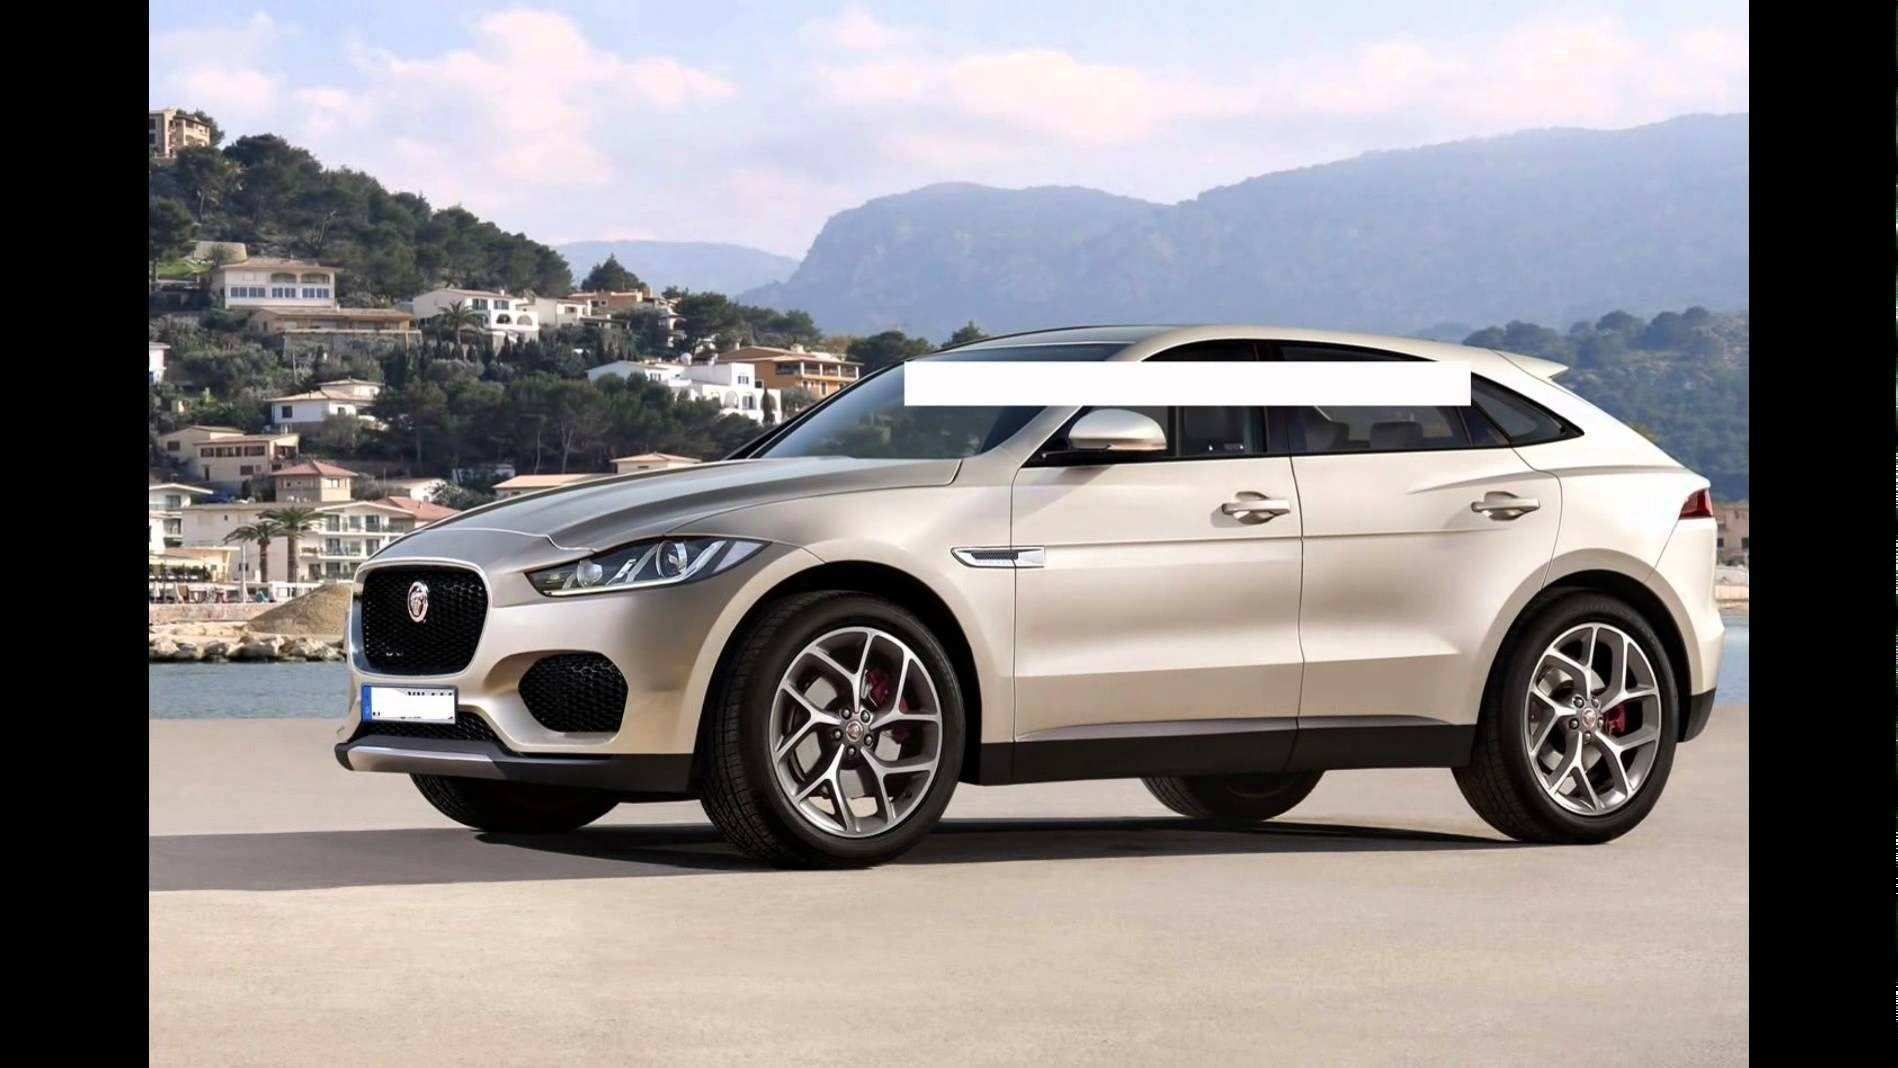 99 New 2020 Jaguar Suv Exterior Performance by 2020 Jaguar Suv Exterior